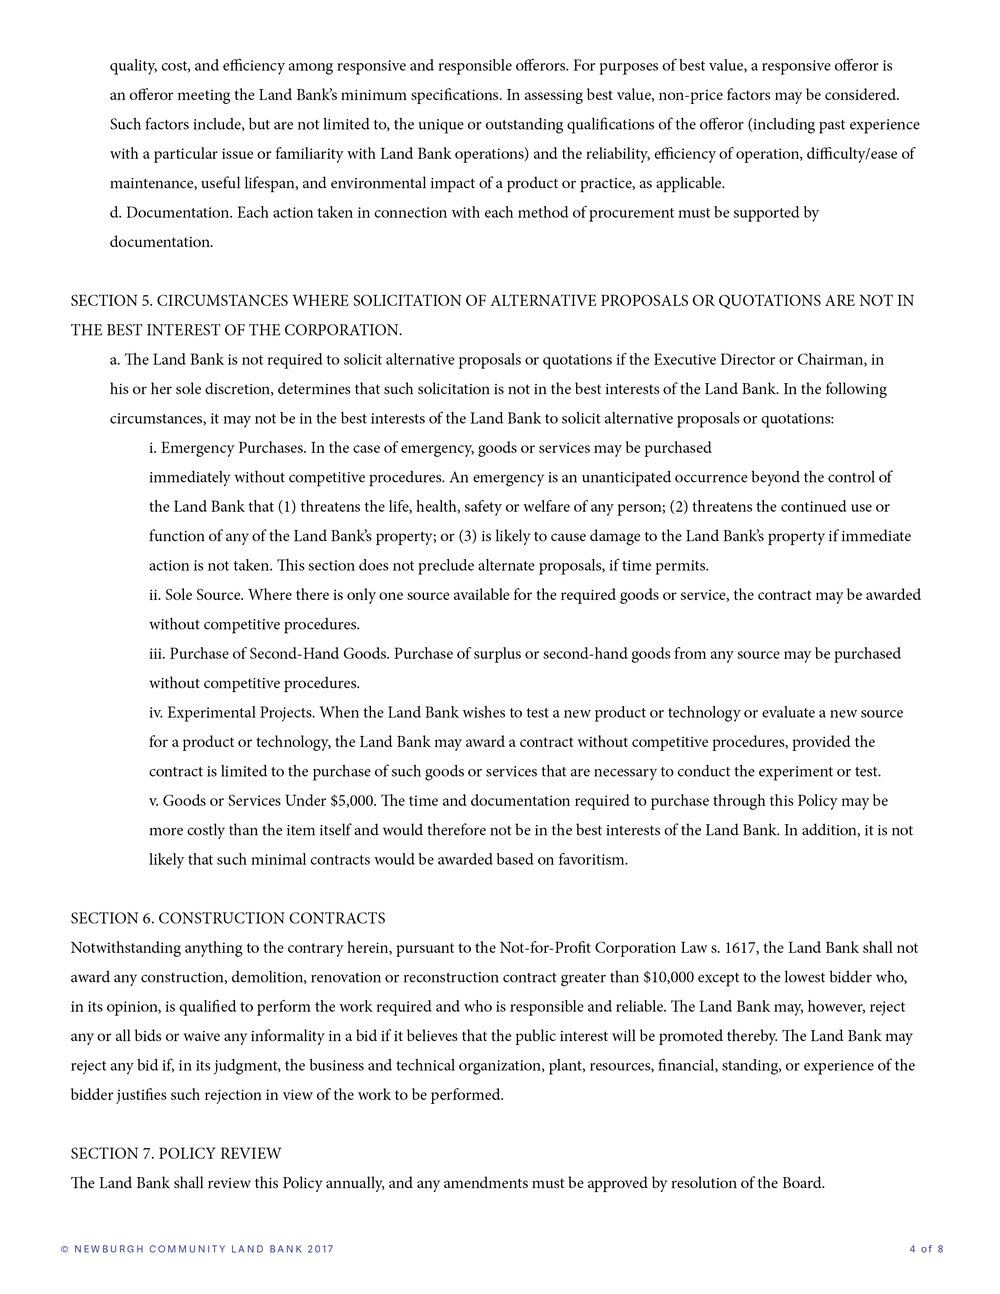 NCLB Procurement Policy4.jpg